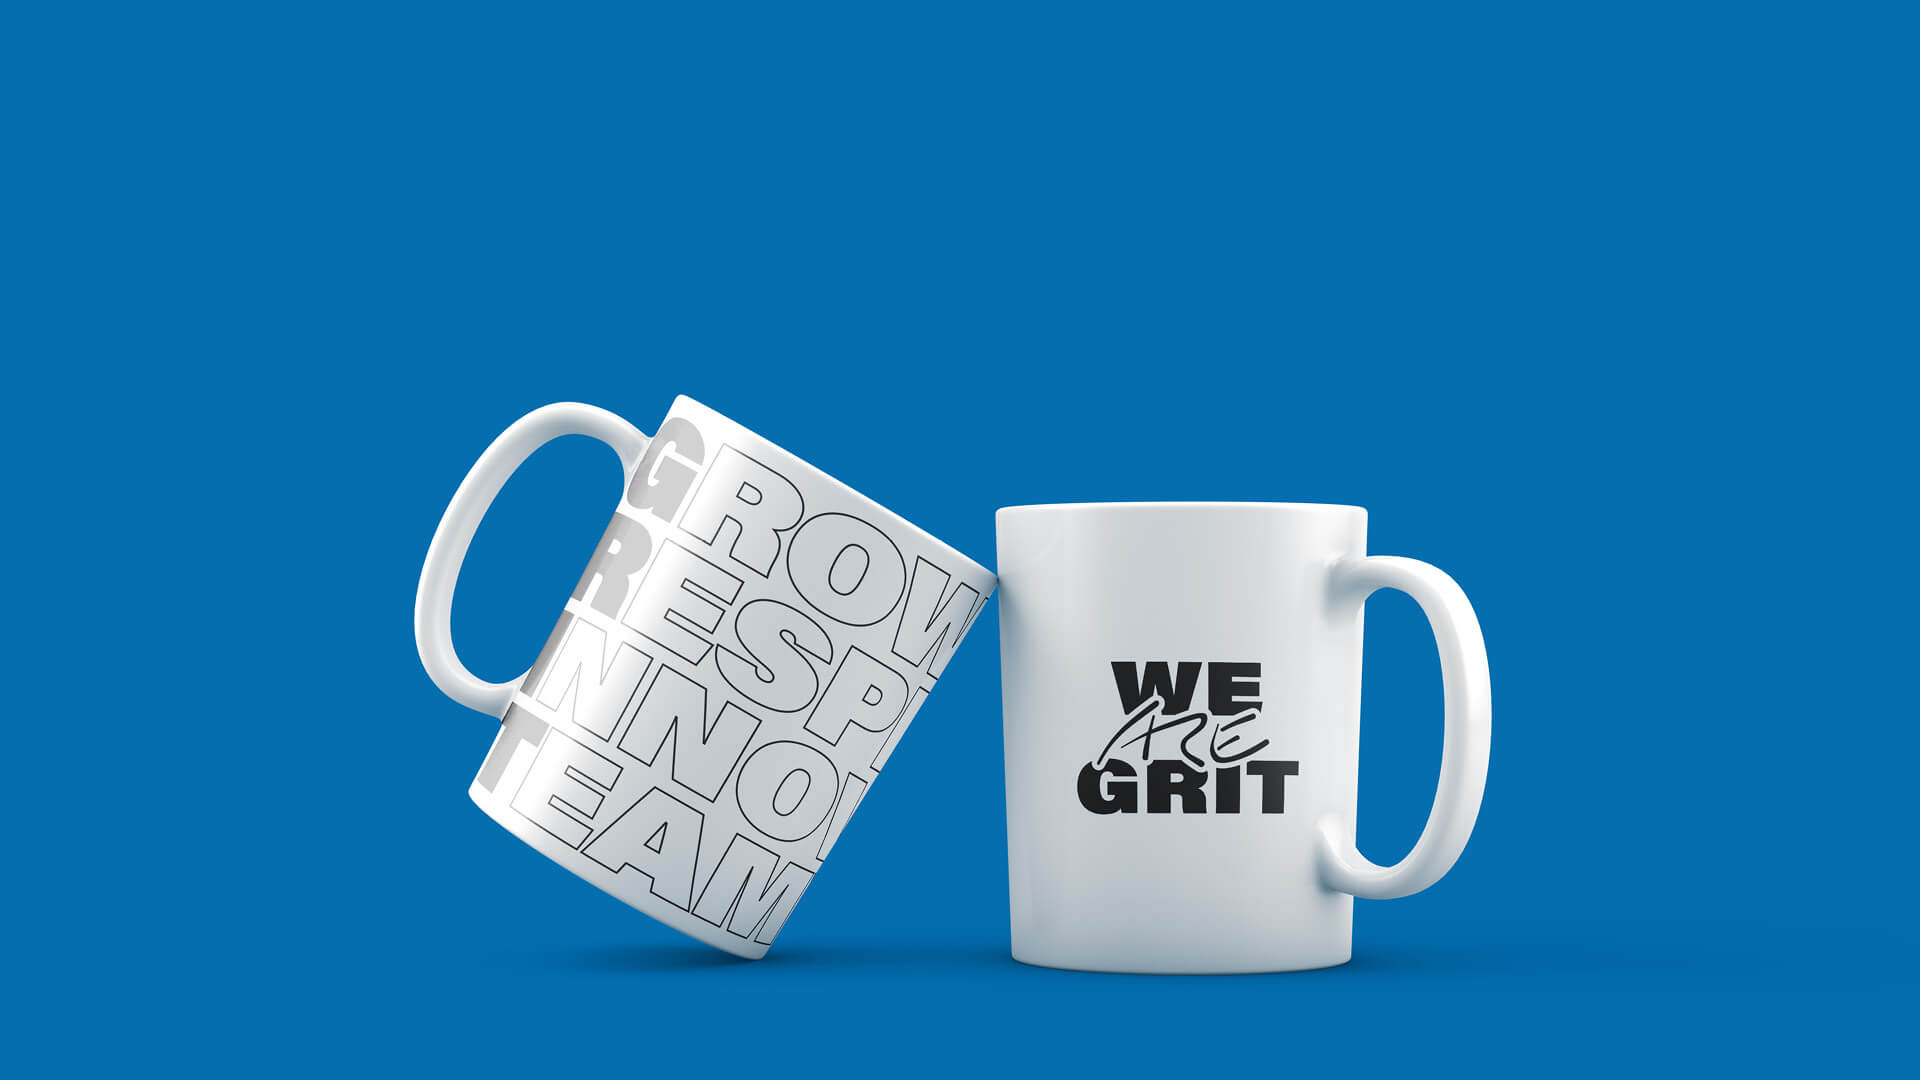 We ARE Grit – Mugs